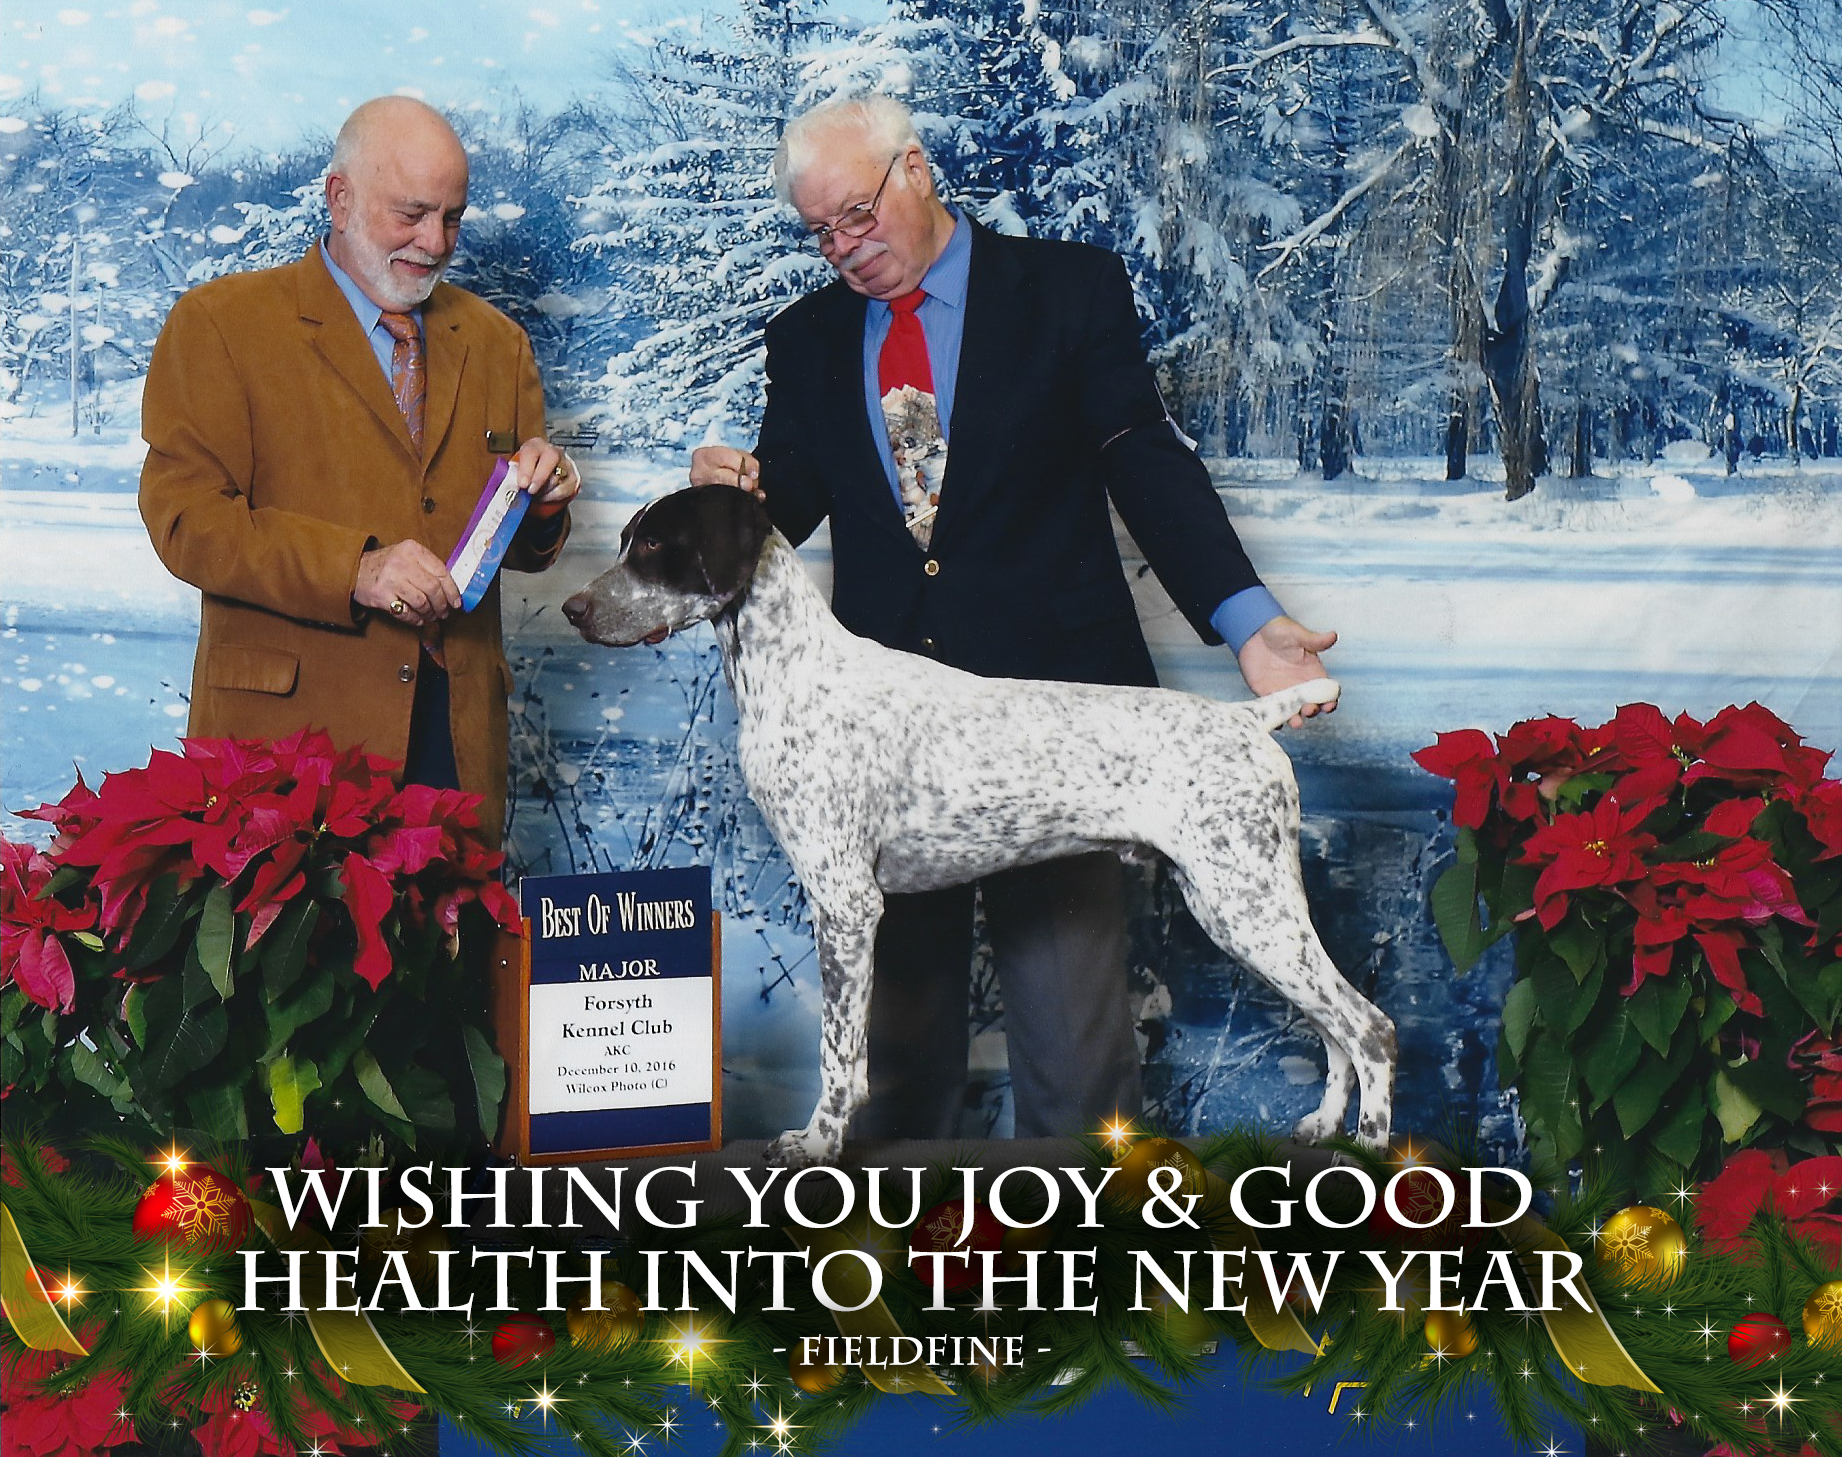 2020 Holiday Wishes from Fieldfine